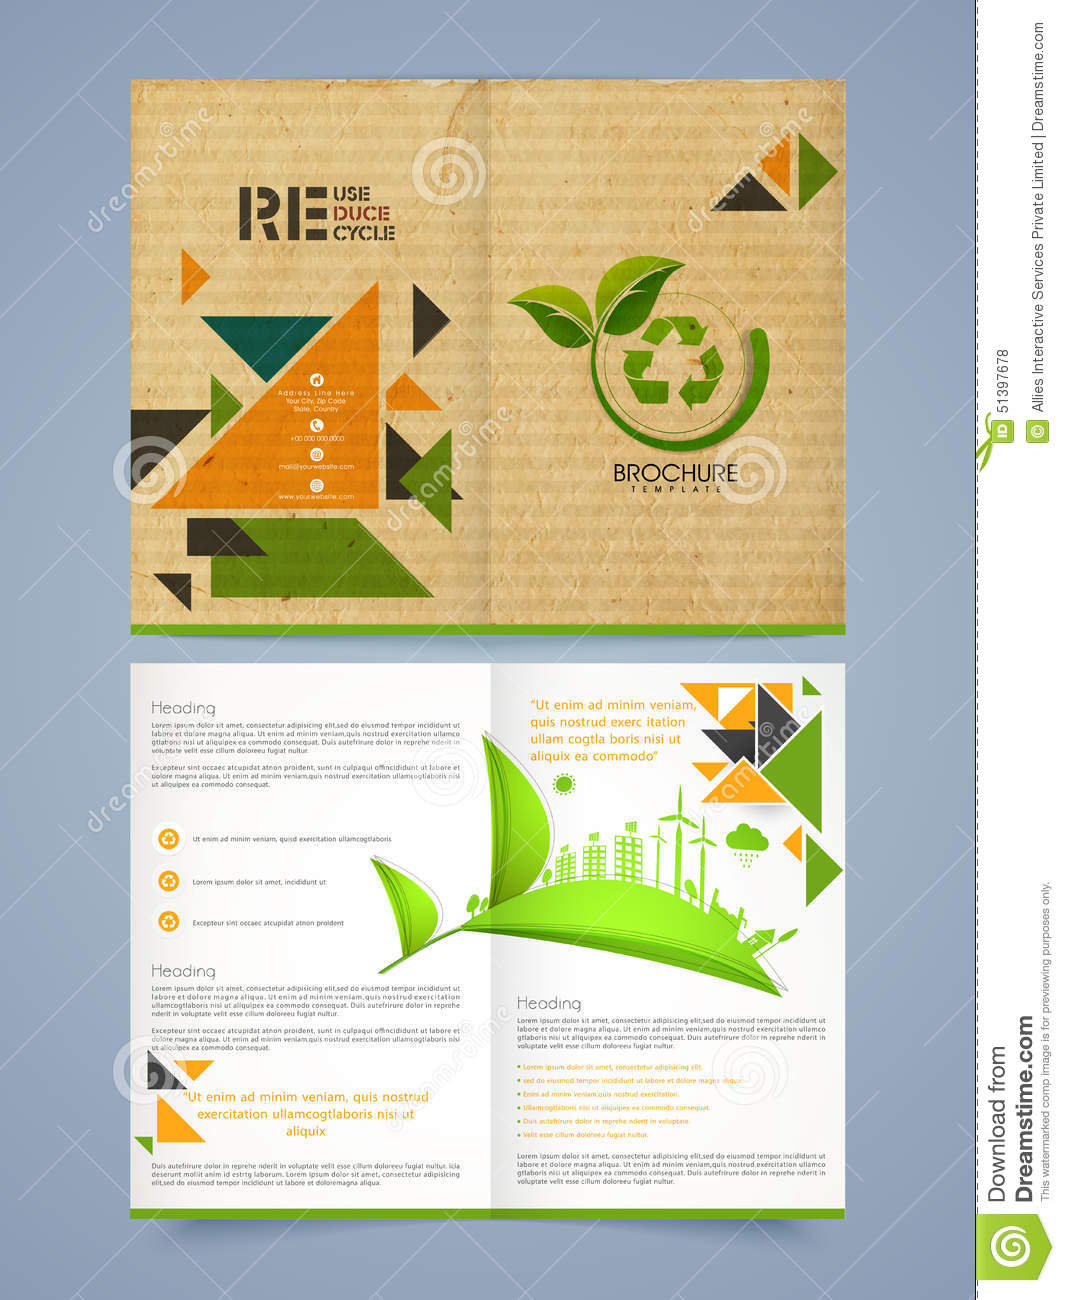 brochure pages template - two pages brochure flyer or template for business stock